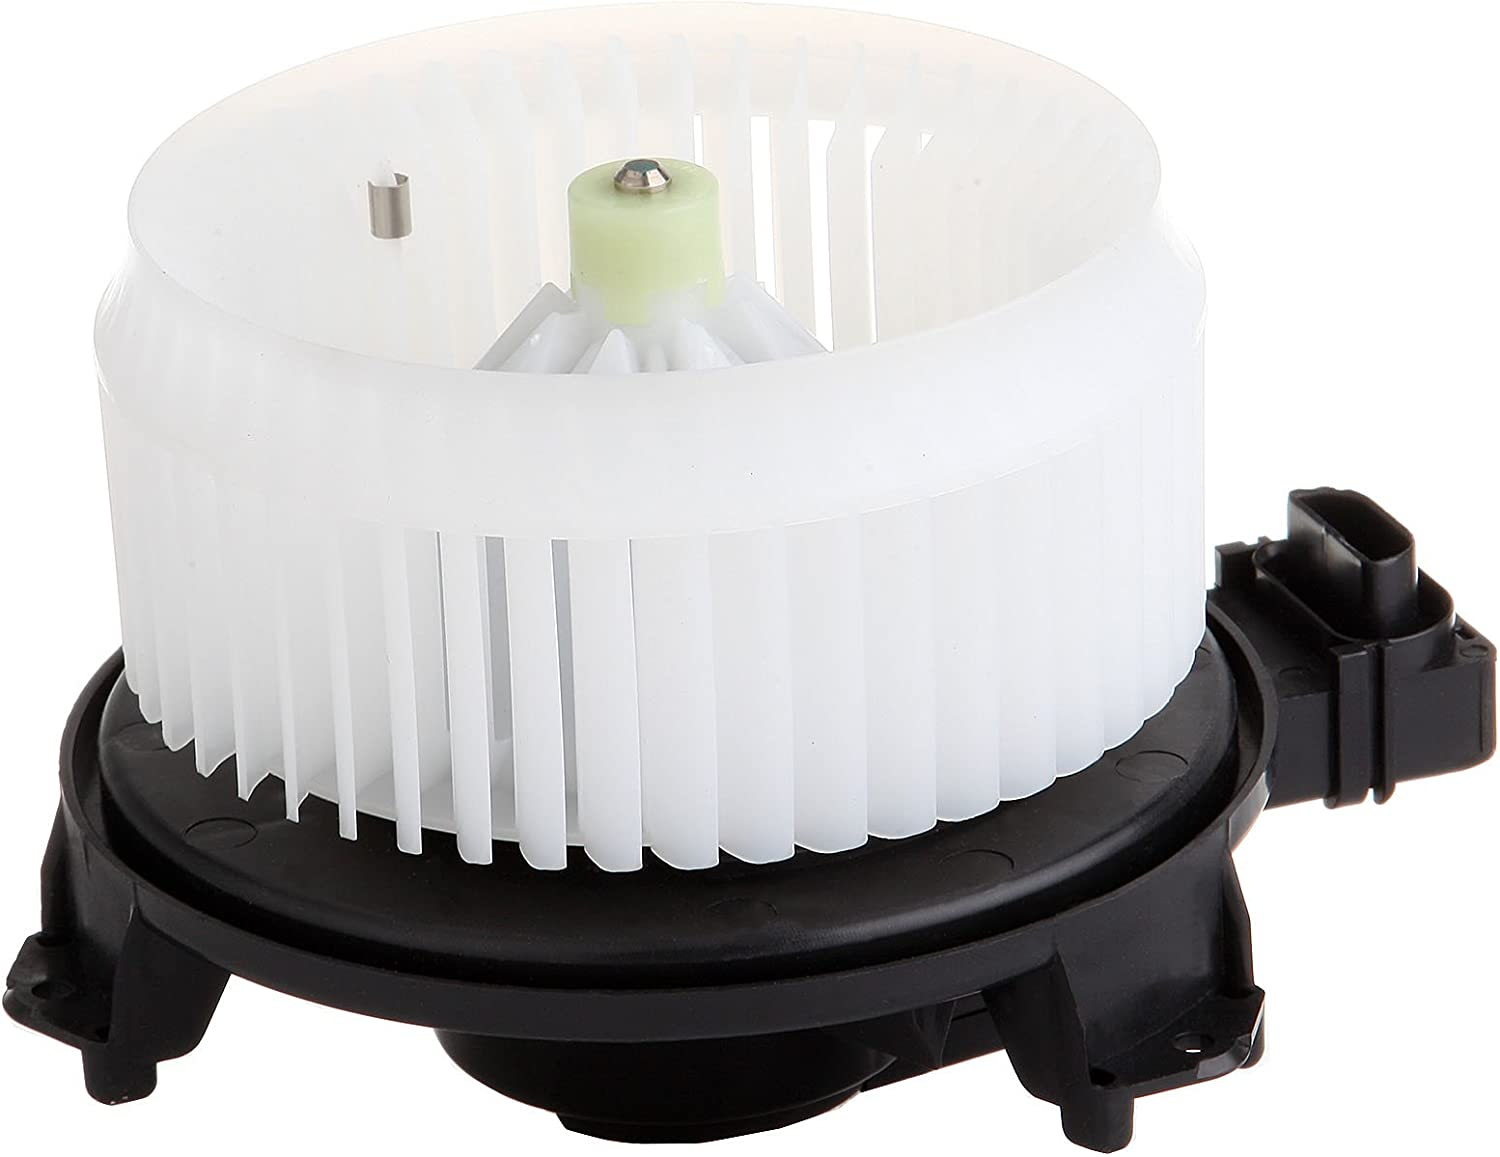 ROADFAR Heater Blower Motor 8710302200 Air Conditioning Blower Motor Fan Cage Fit for 2011-2016 Scion tC// 2008-2015 Scion xB// 2009-2013 Toyota Corolla// 2009-2014 Toyota Matrix// 2006-2012 Toyota RAV4